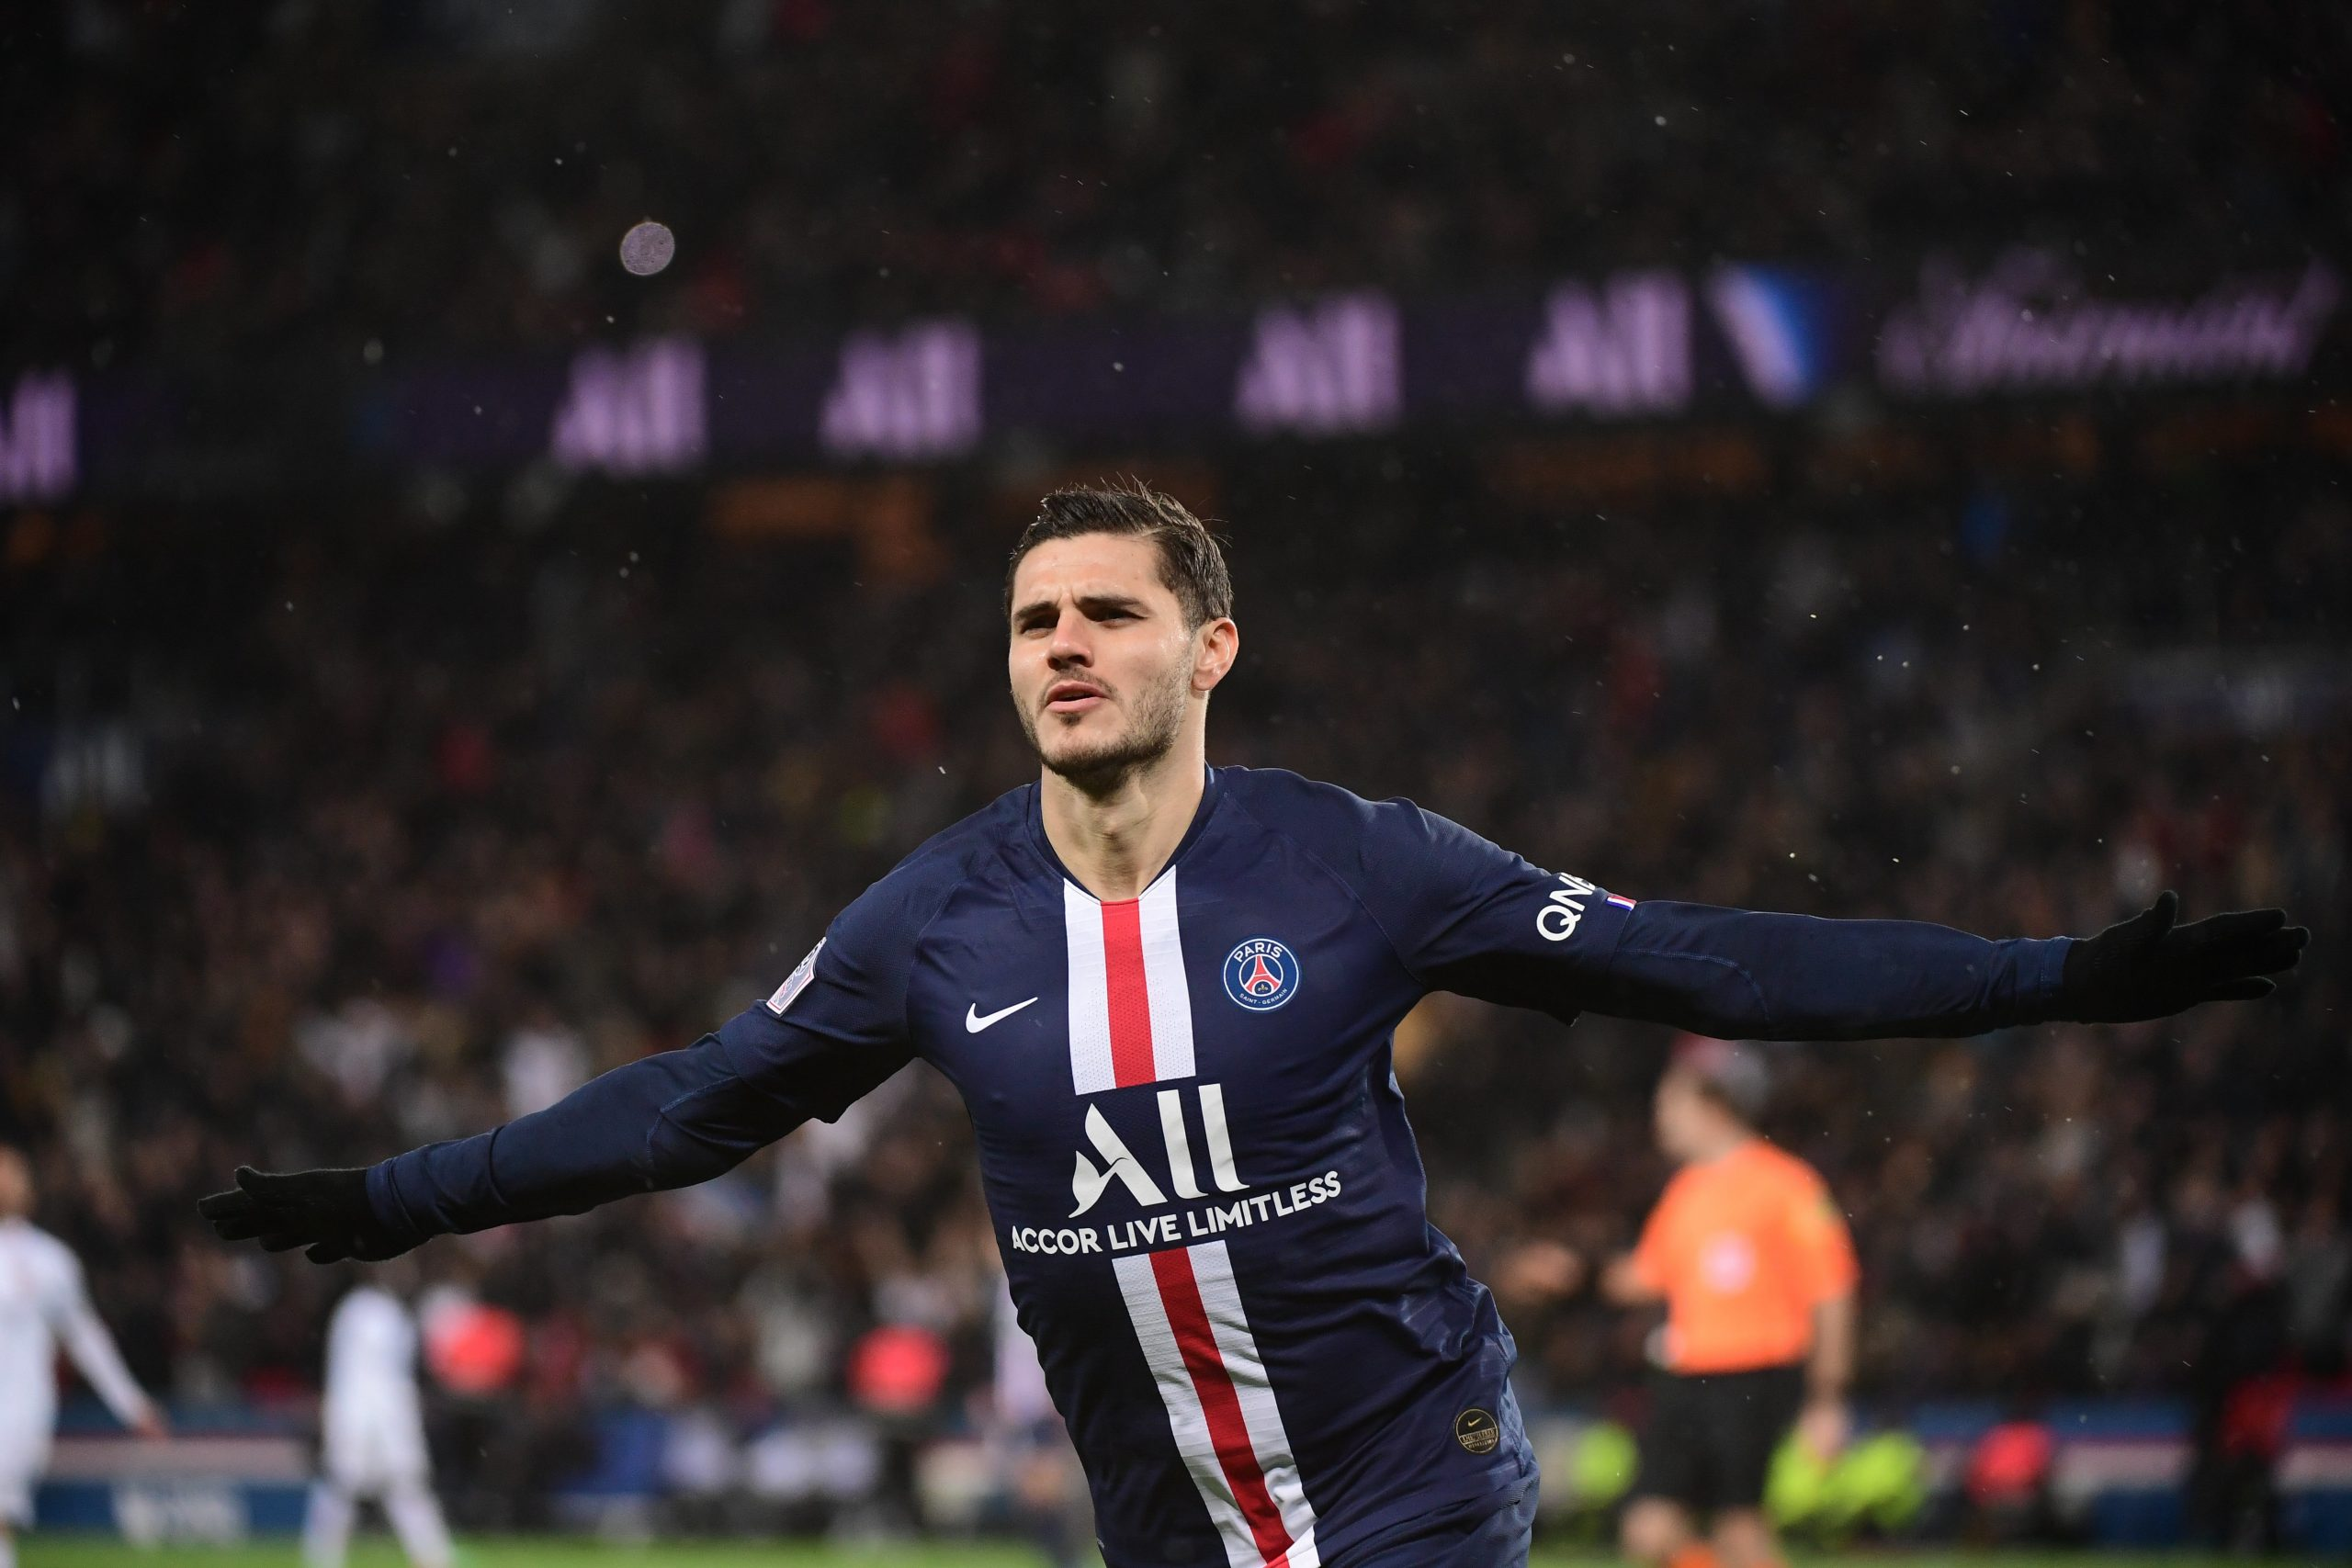 Mercato - The Sun place Kurzawa et Icardi dans les recrues possibles d'Arsenal